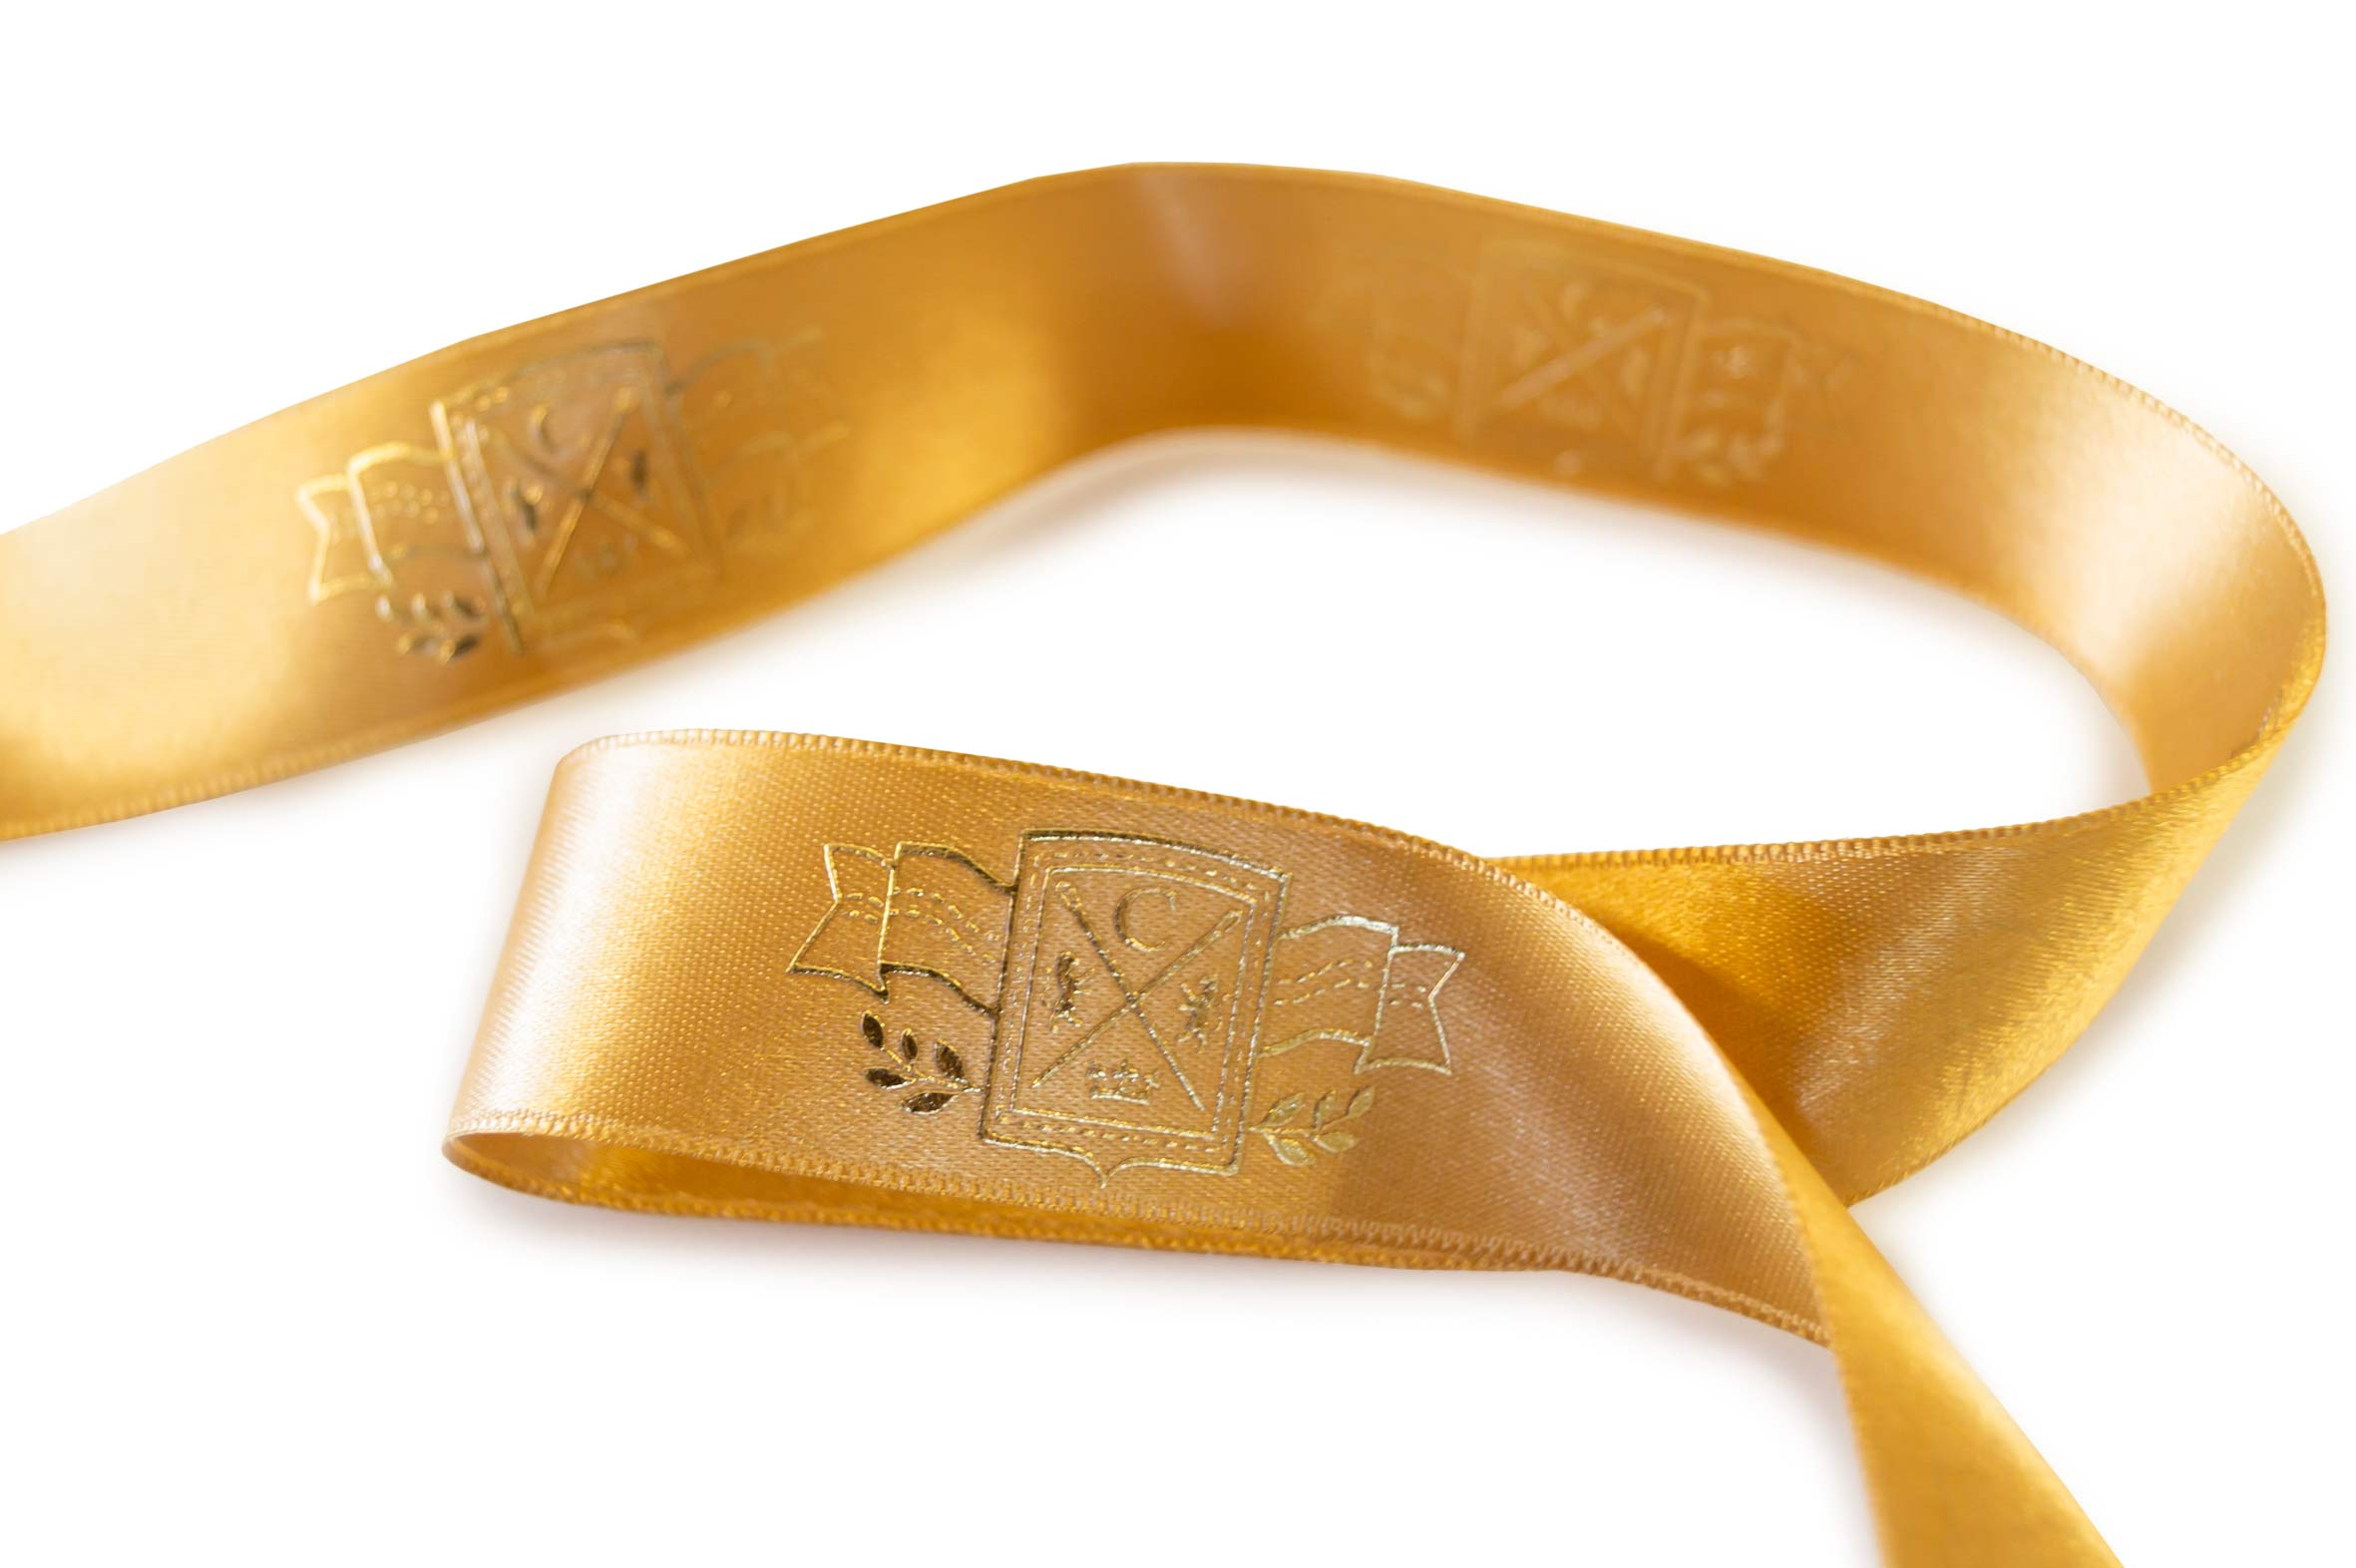 Gift ribbon SO with metallic relief print